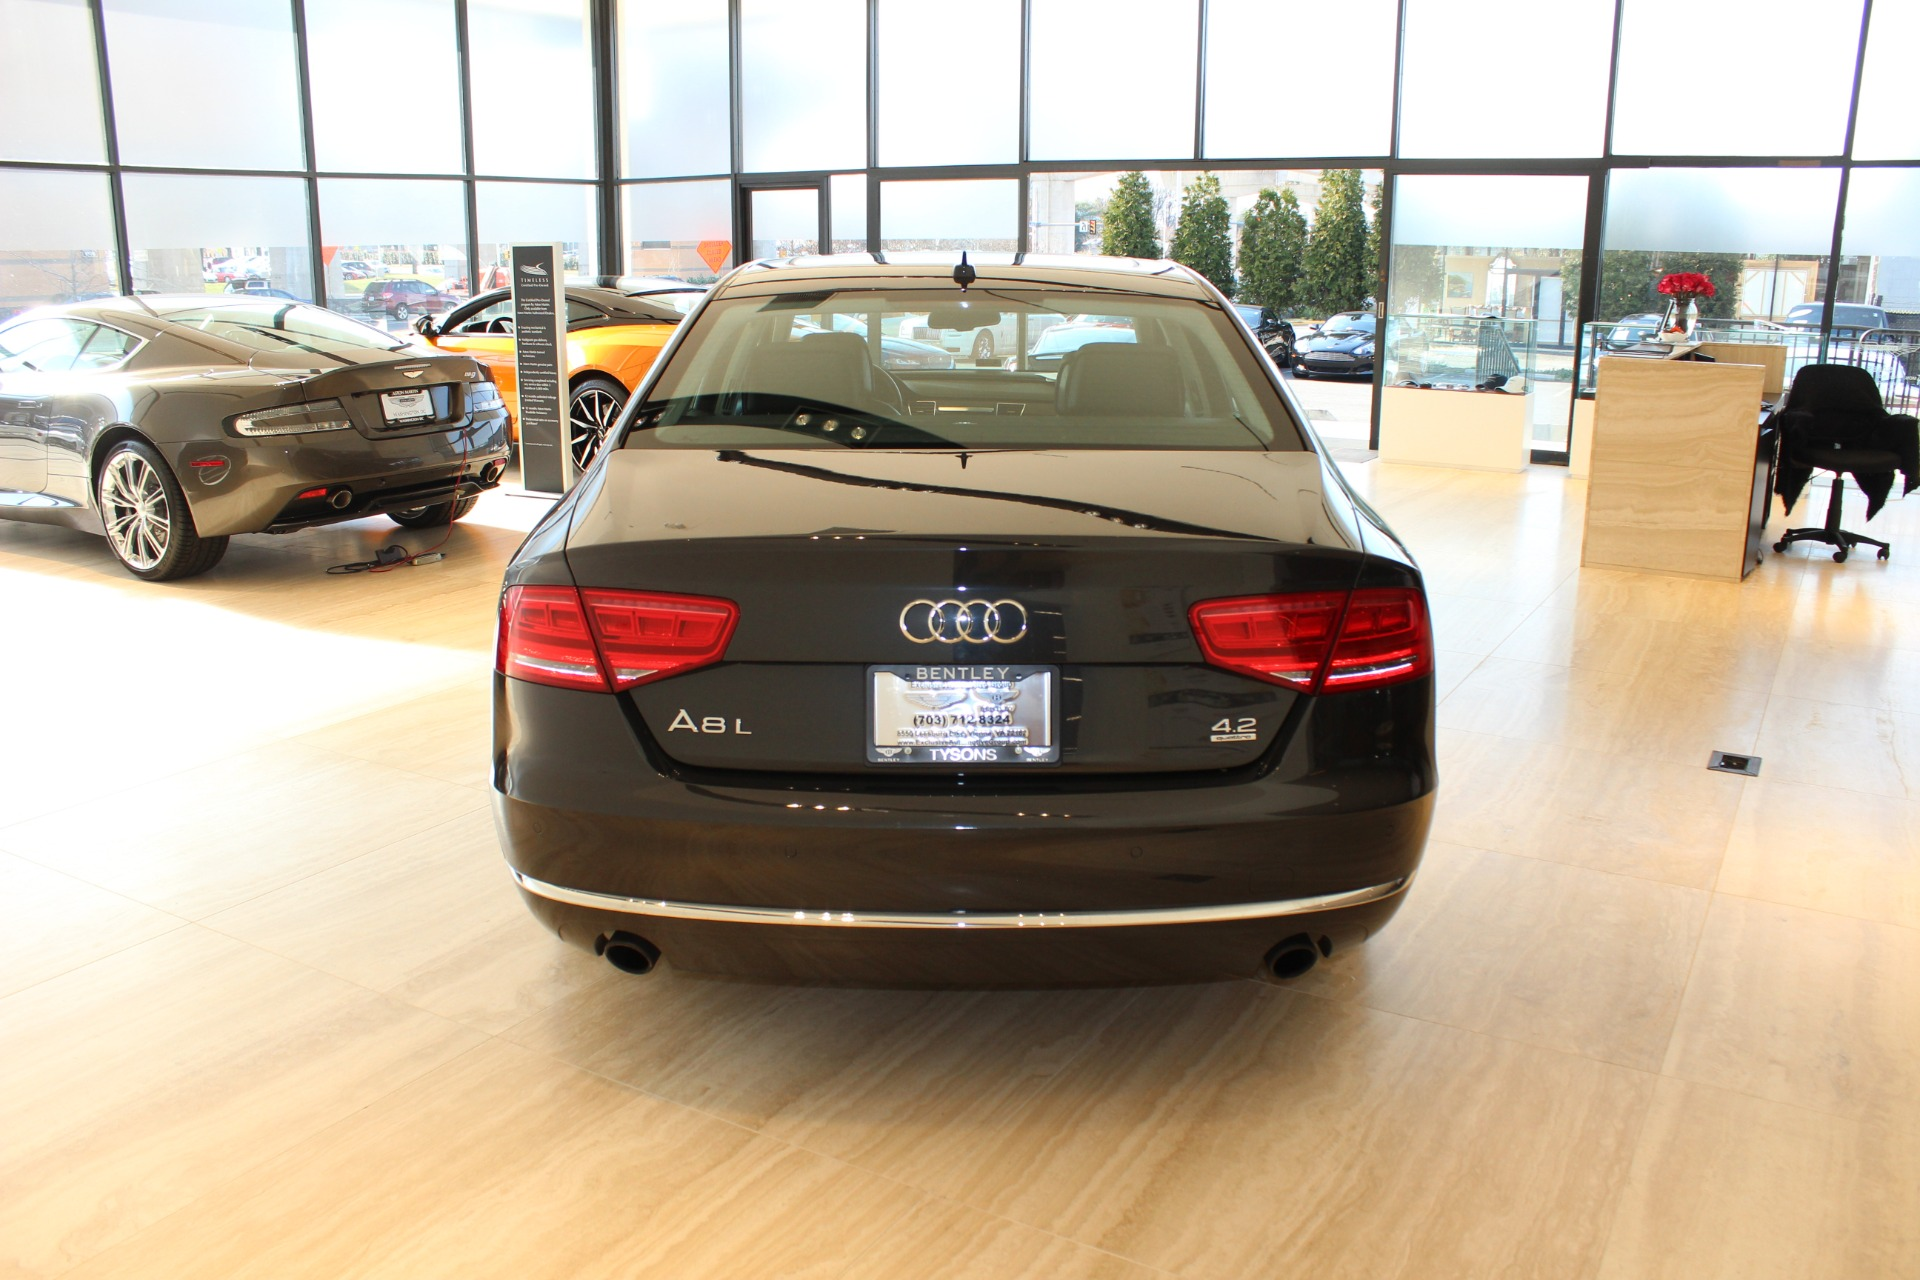 2011 audi a8 l quattro stock 7nc016052d for sale near vienna va va audi dealer for sale in. Black Bedroom Furniture Sets. Home Design Ideas